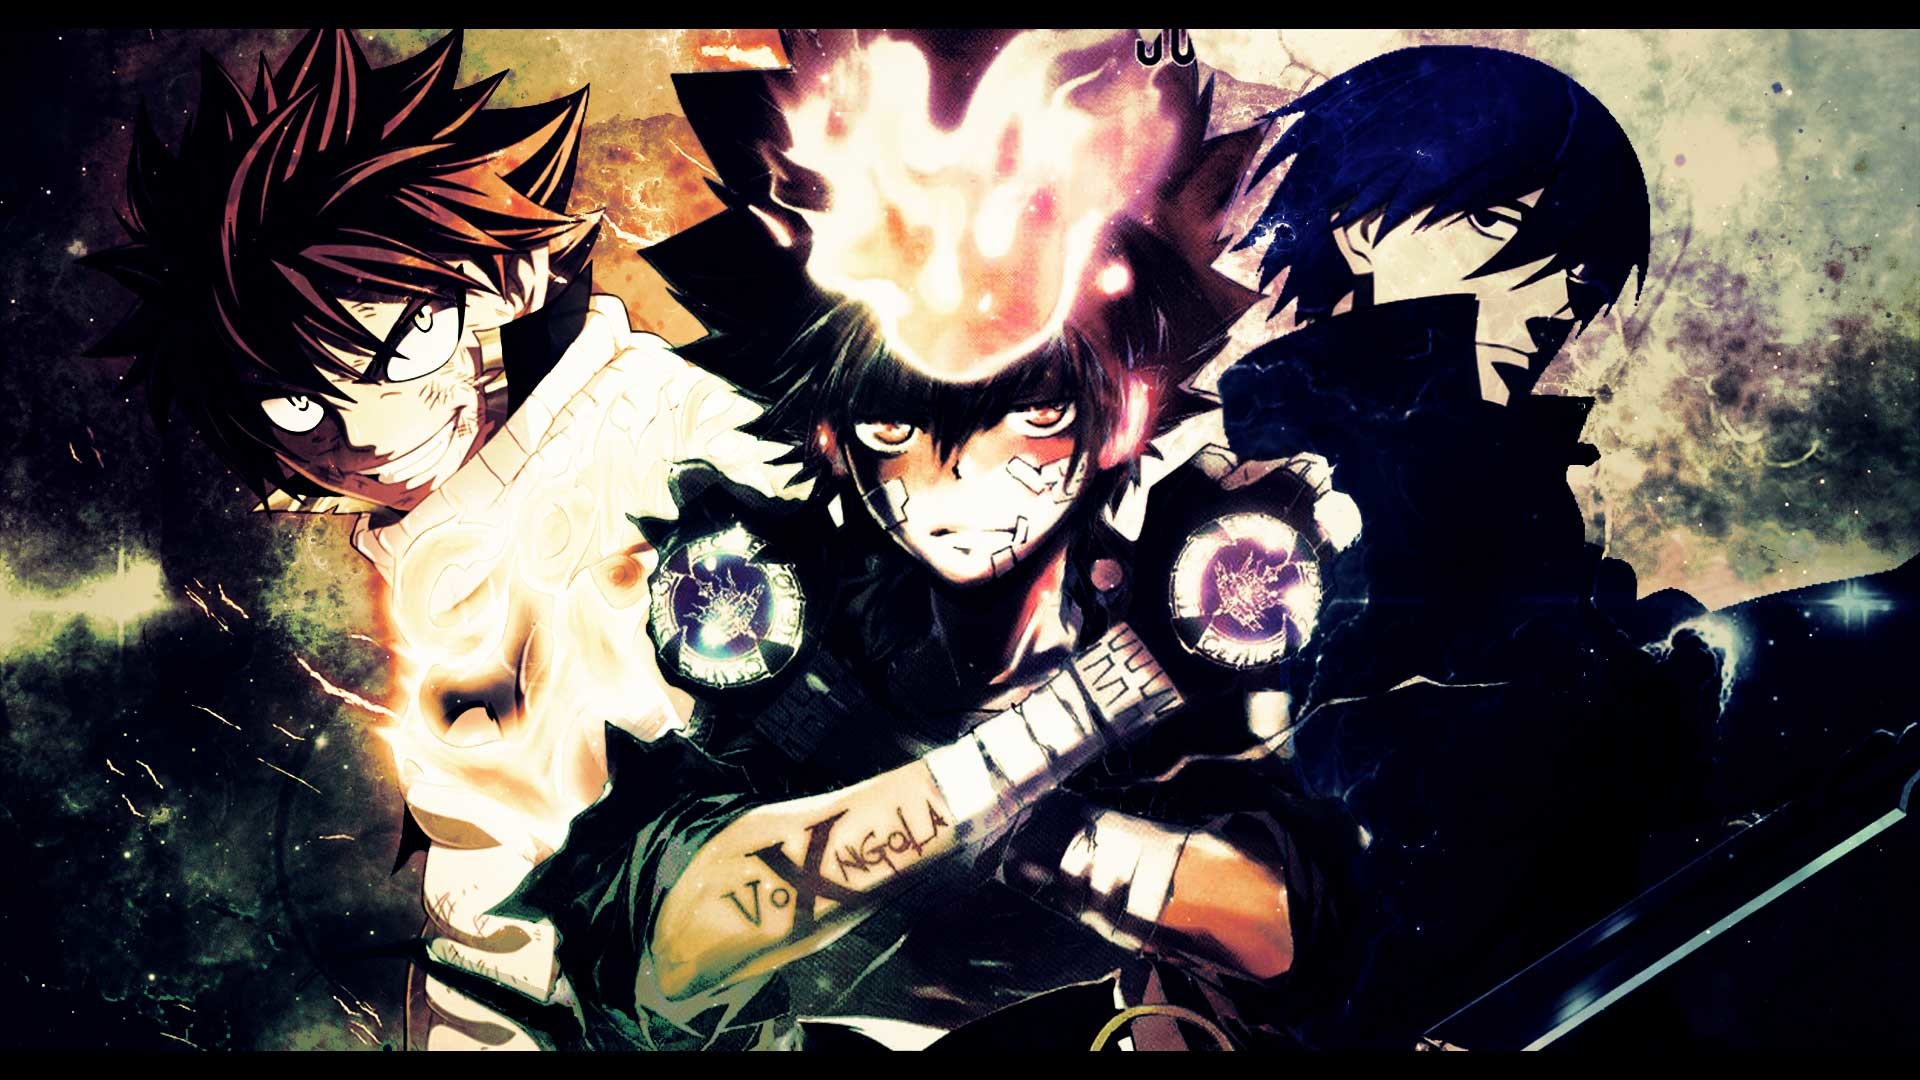 Res: 1920x1080, Adorable HDQ Backgrounds of Fairy Tail,  px for desktop and mobile